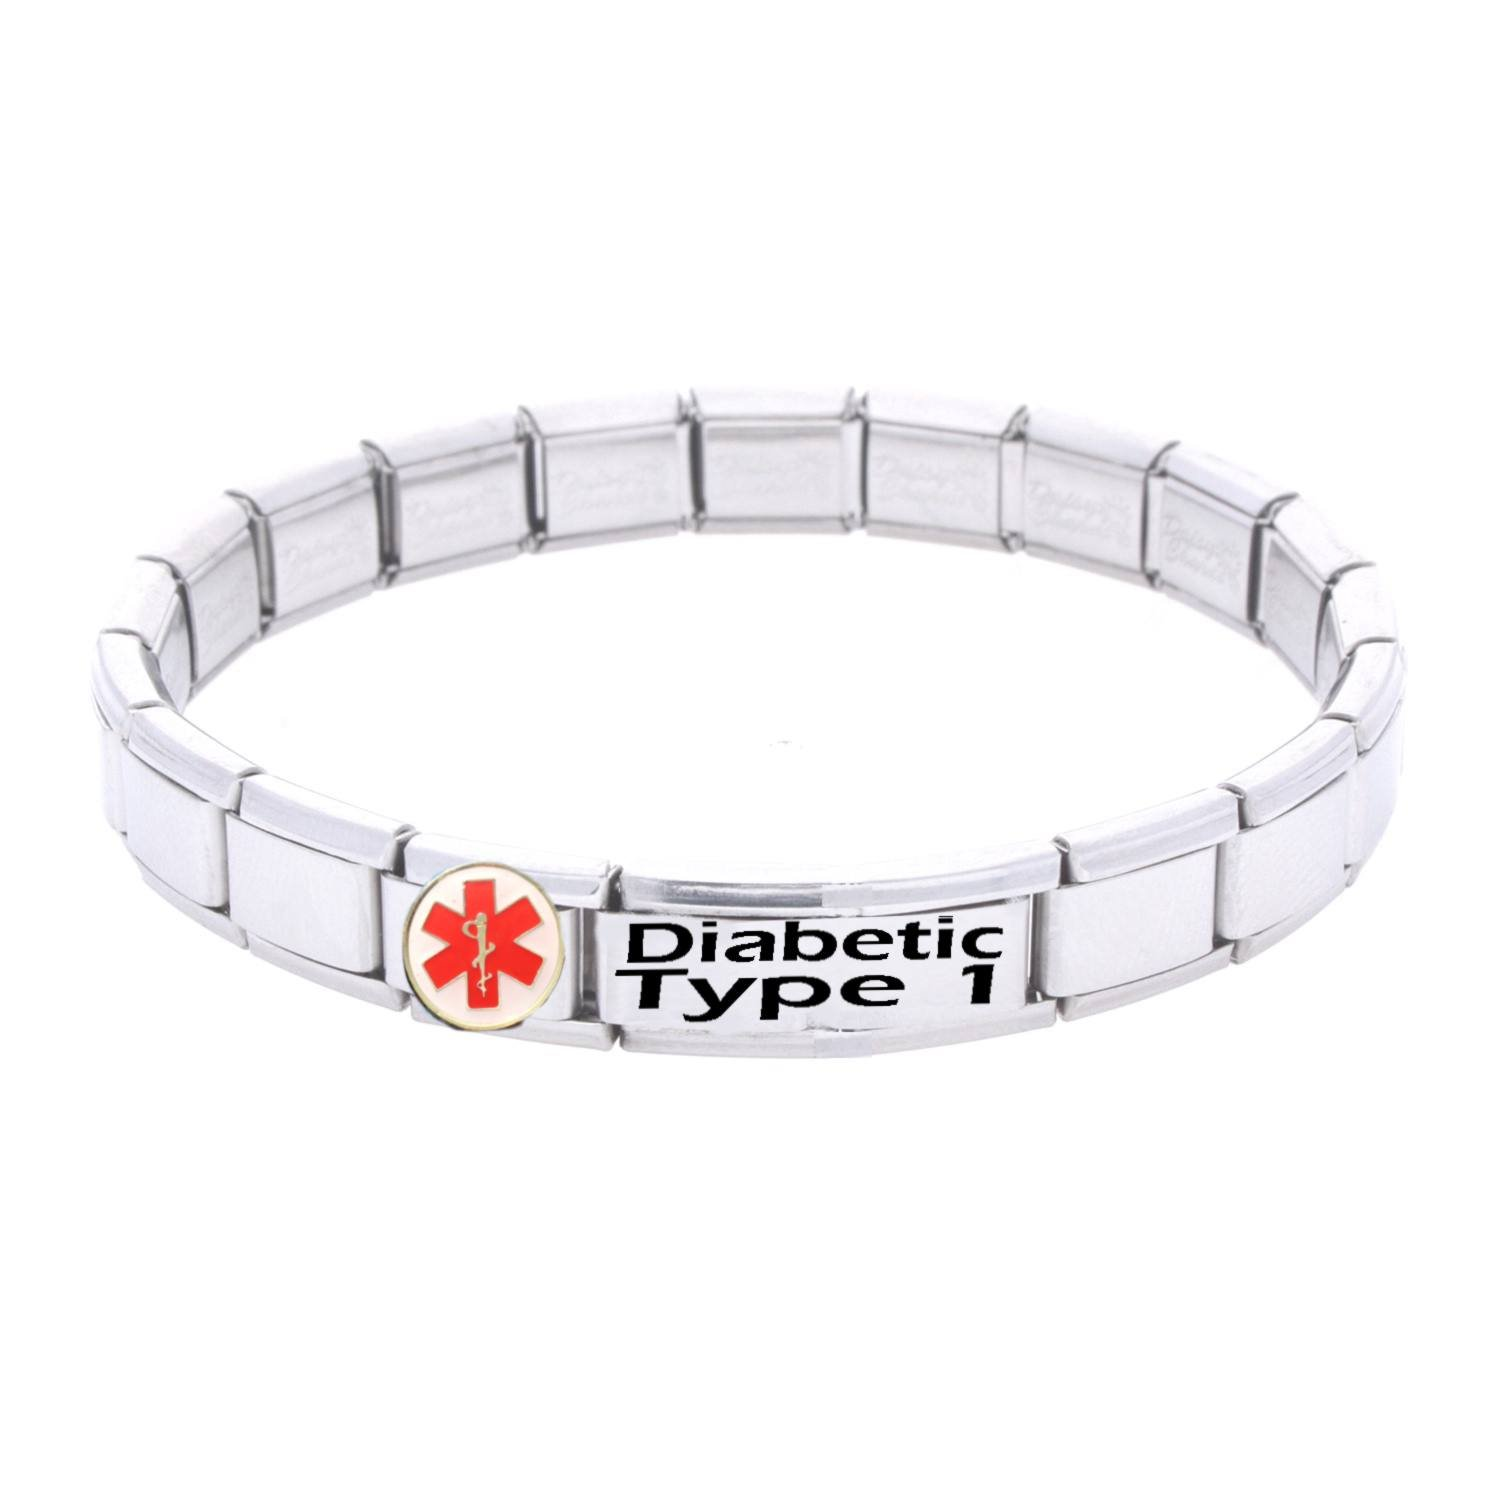 diabetes surgical medical type for home alert bracelets impl shopcart steel bracelet sabrinasilver